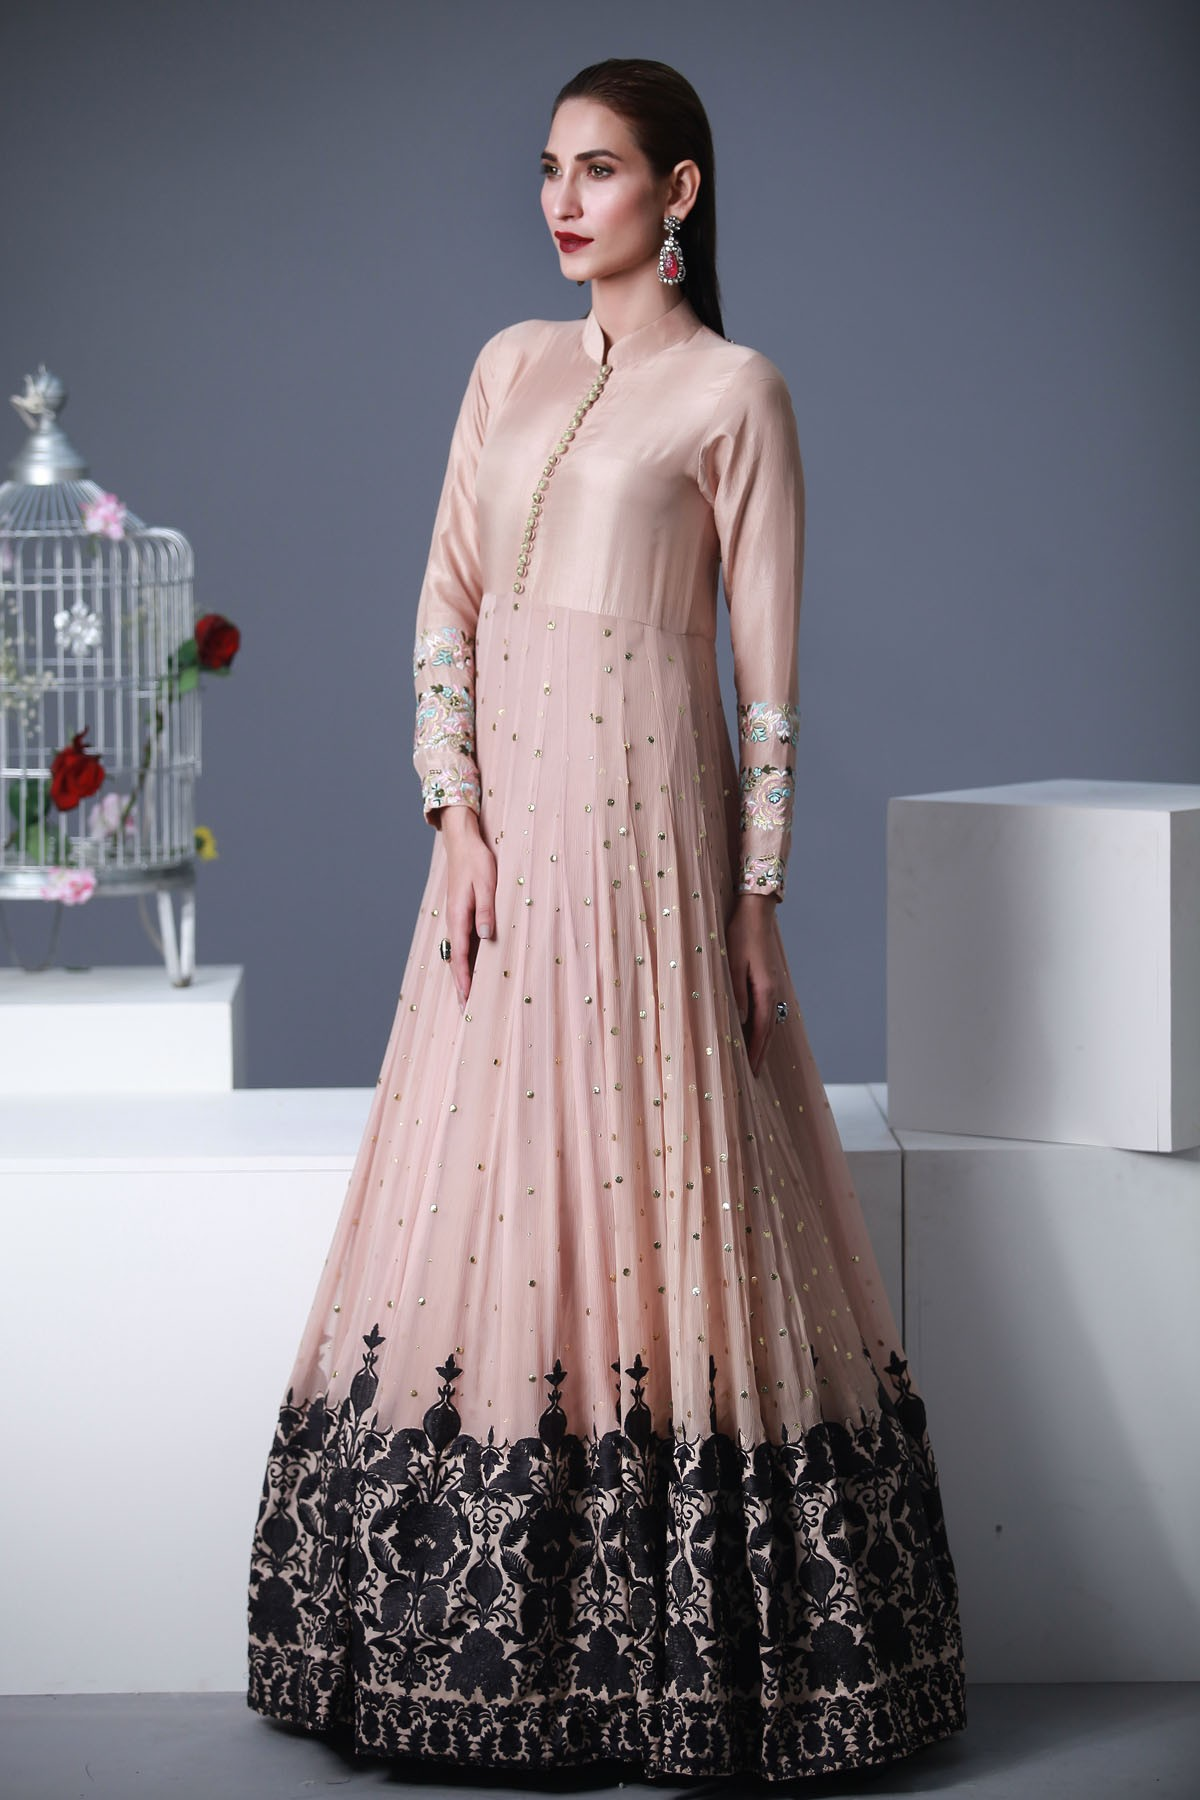 25 latest trends in pakistani party dresses 2018 dresses for Pakistani dresses for wedding parties